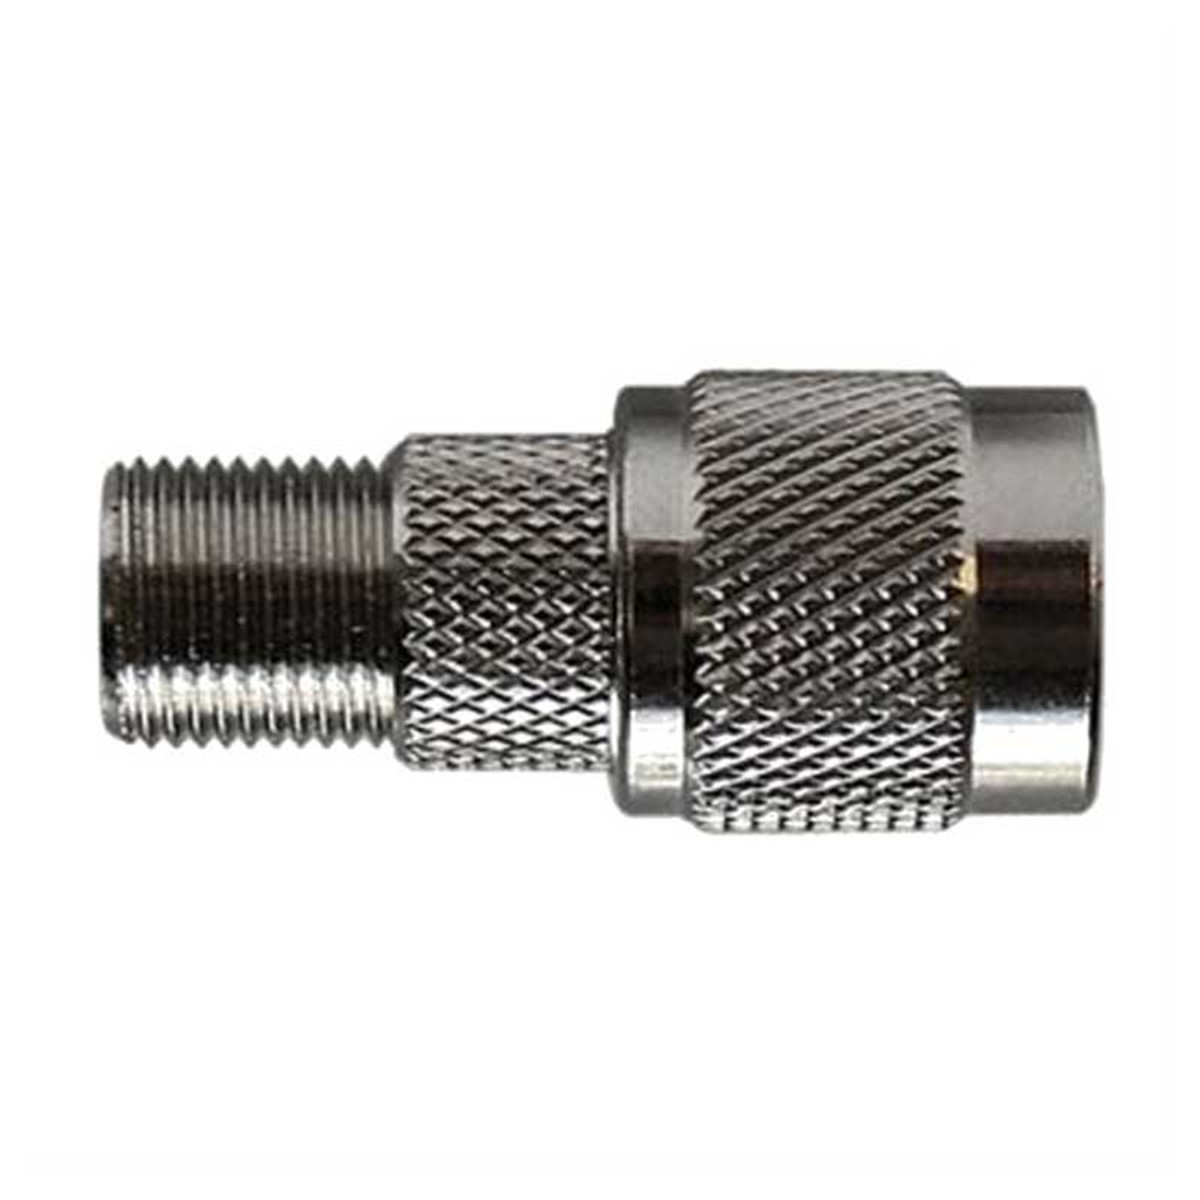 971130 Wilson F Female To TNC Male Adapter